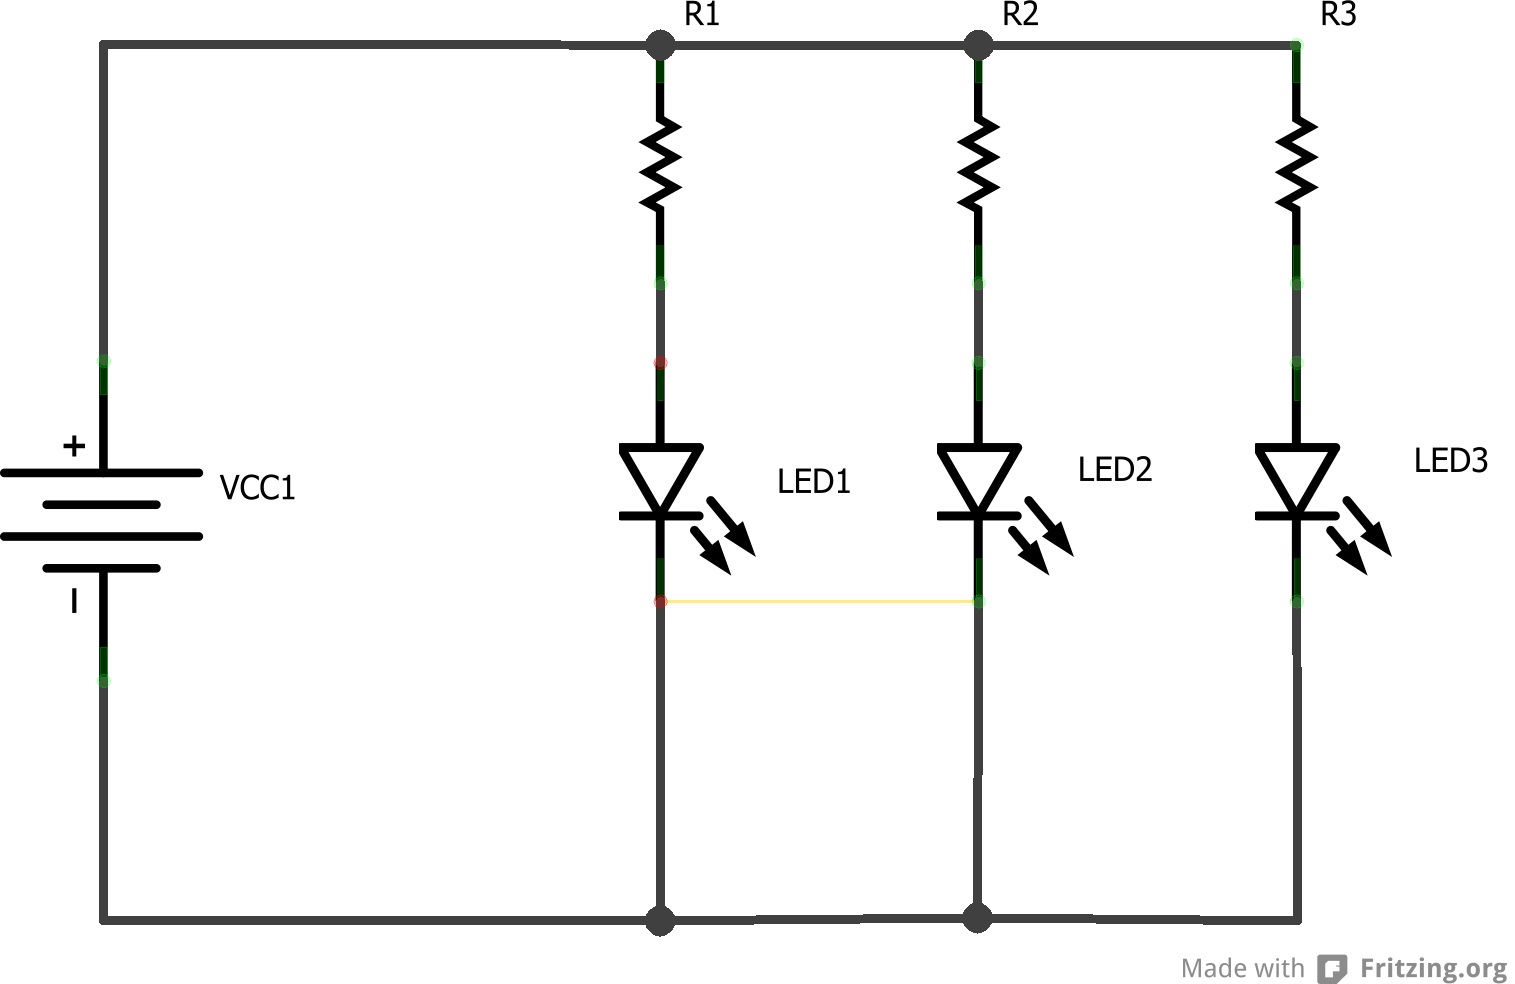 3 Wire Led Christmas Lights Wiring Diagram | Wire switch, Diagram, WirePinterest